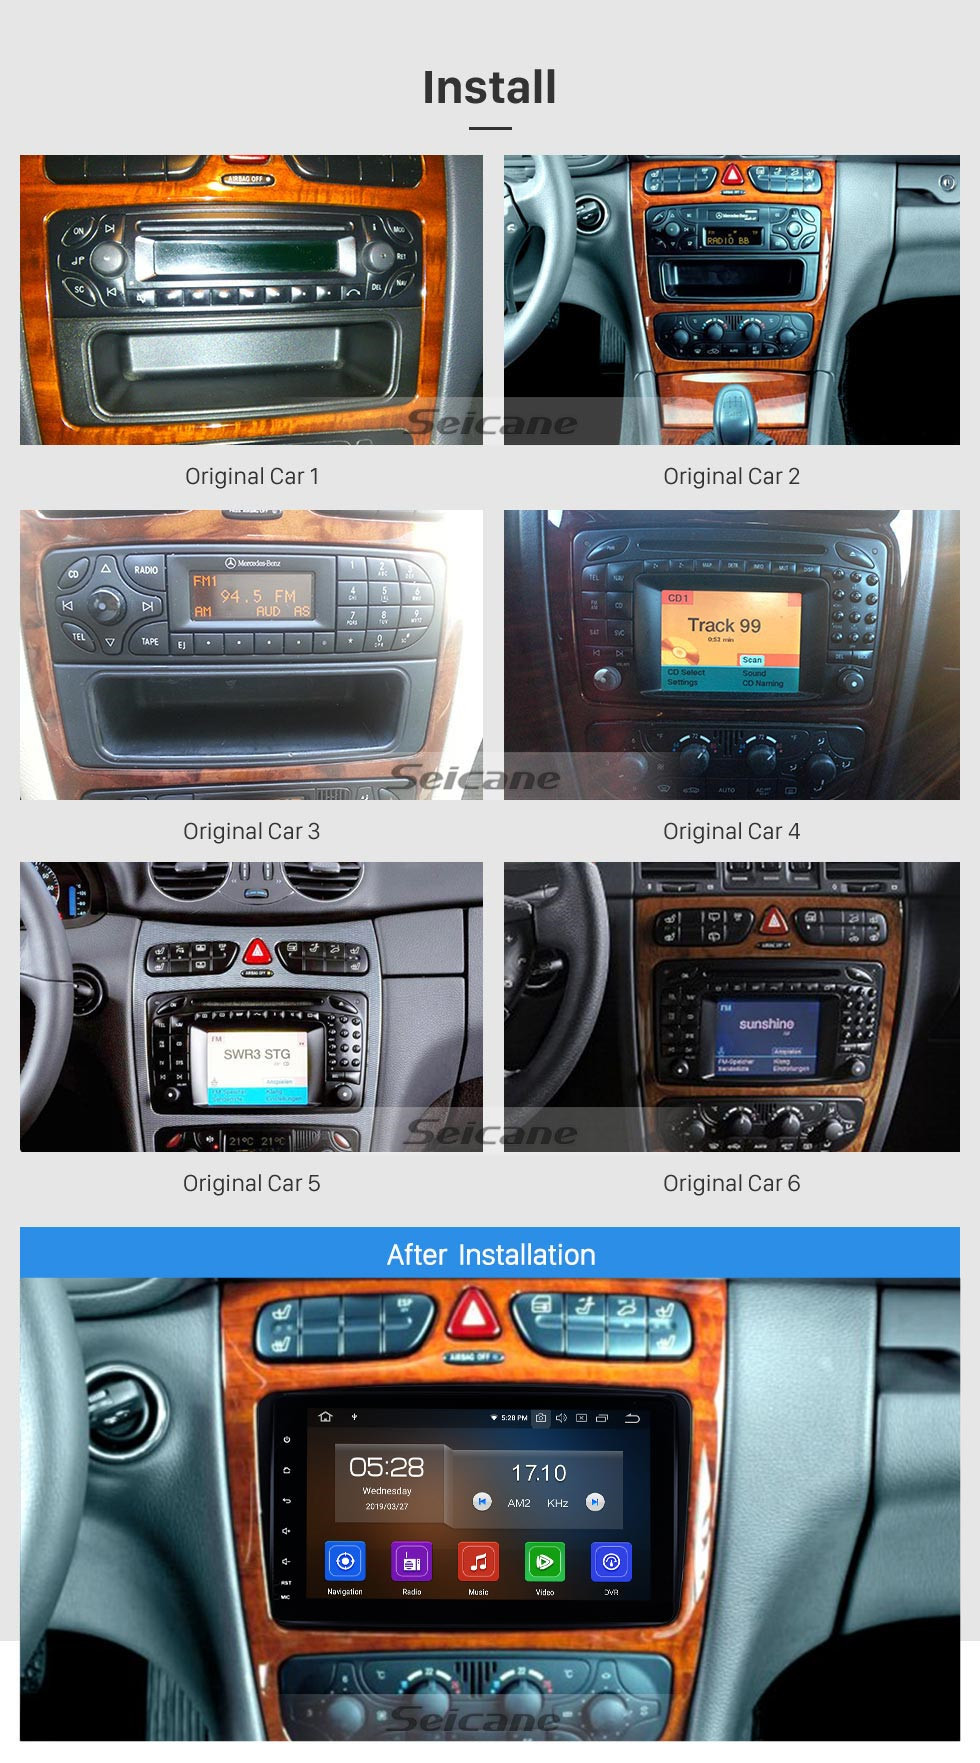 Seicane In dash Radio 1998-2004 Mercedes-Benz G Class W463 G550 G500 G400 G320 G270 G55 Android 10.0 GPS Navigation Bluetooth WIFI 1080P USB Audio system Support Backup Camera DVR OBD2 TPMS